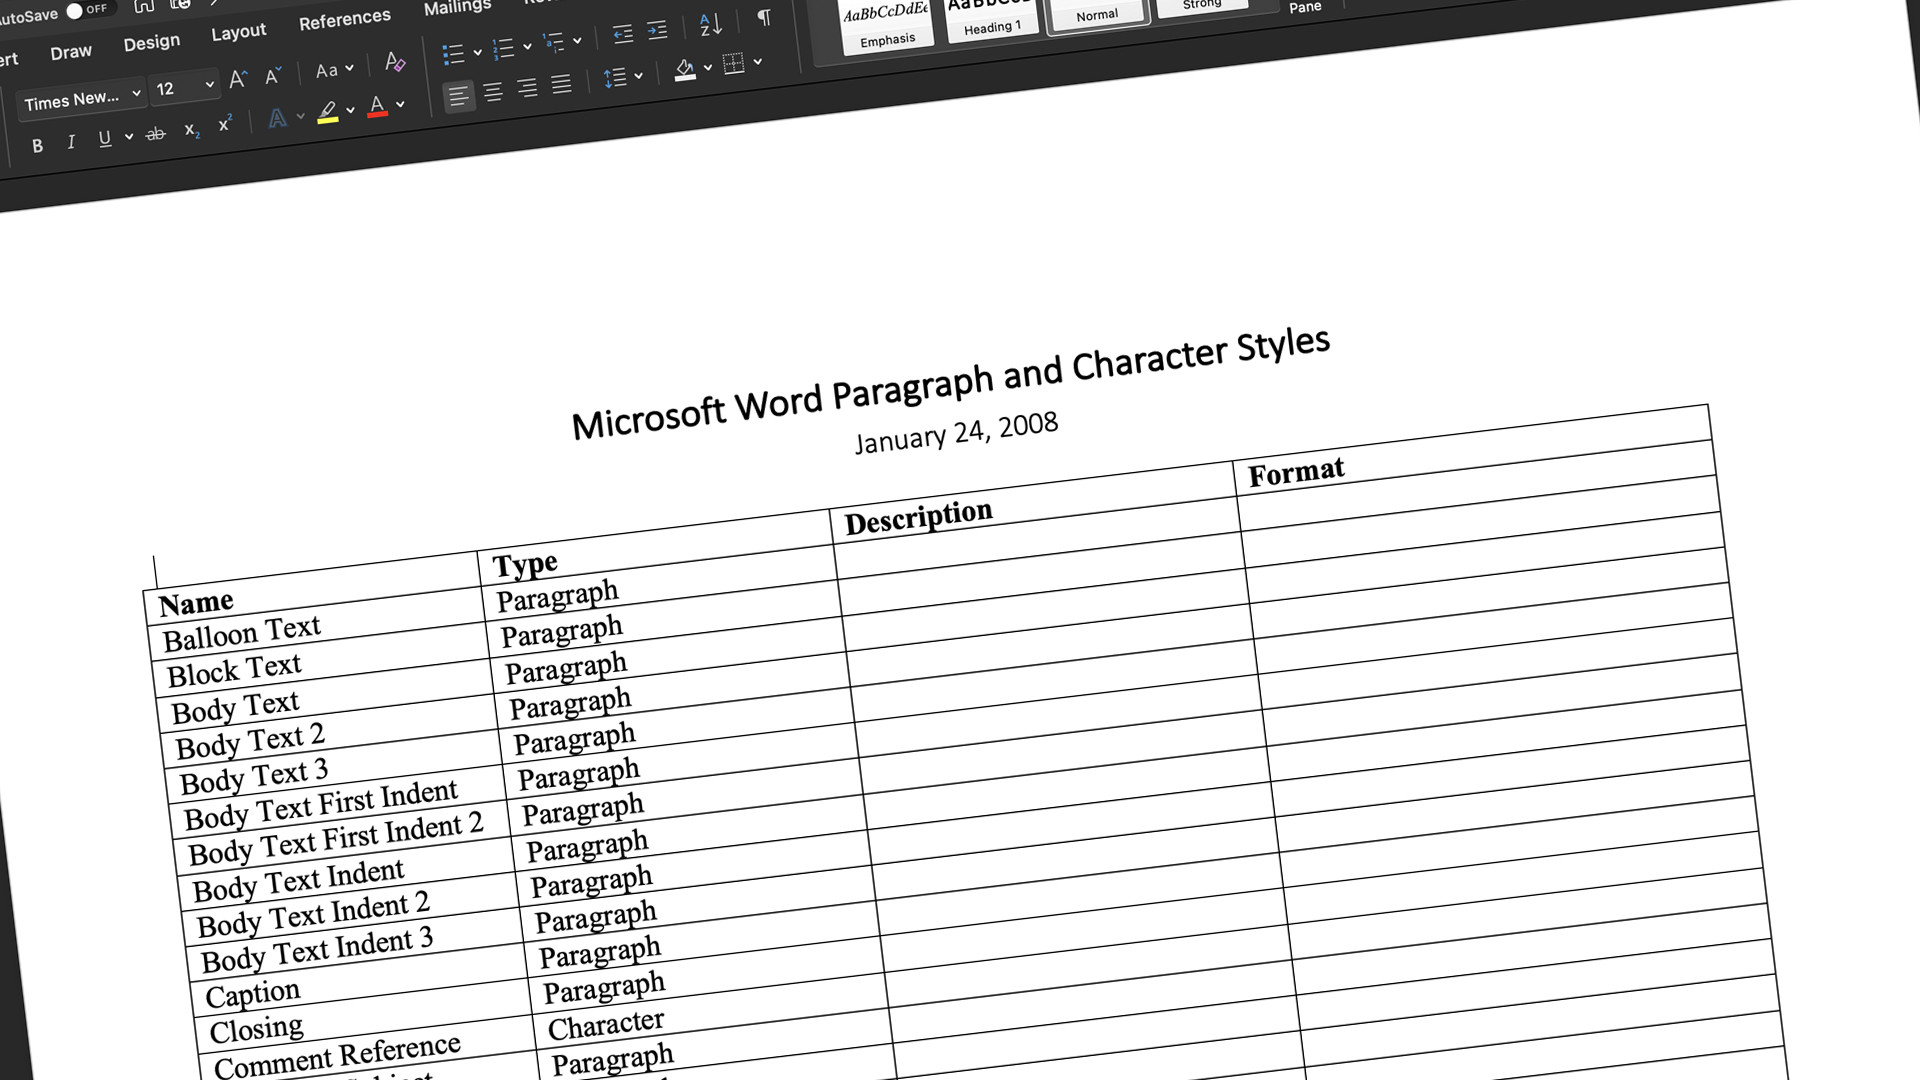 A Word doc listing all the standard Microsoft Word paragraph and character styles.